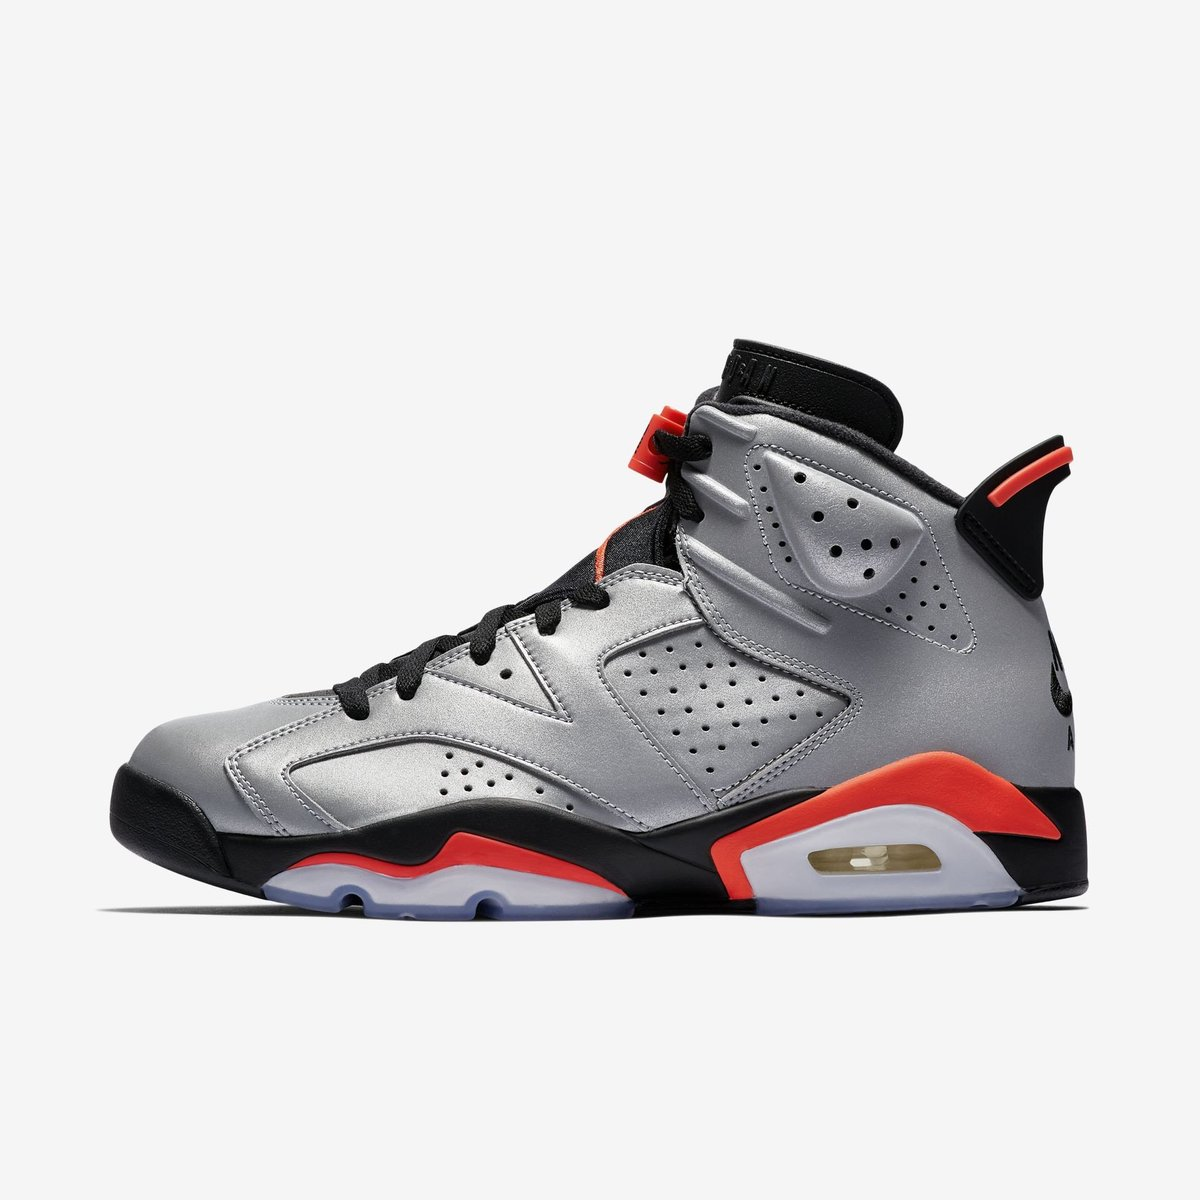 """SALE: Jordan 6 Retro SP """"Reflections of a Champion"""" $145 + shipping on Finish Line. Use code 15VALENTINES150 at checkout  Link ->"""